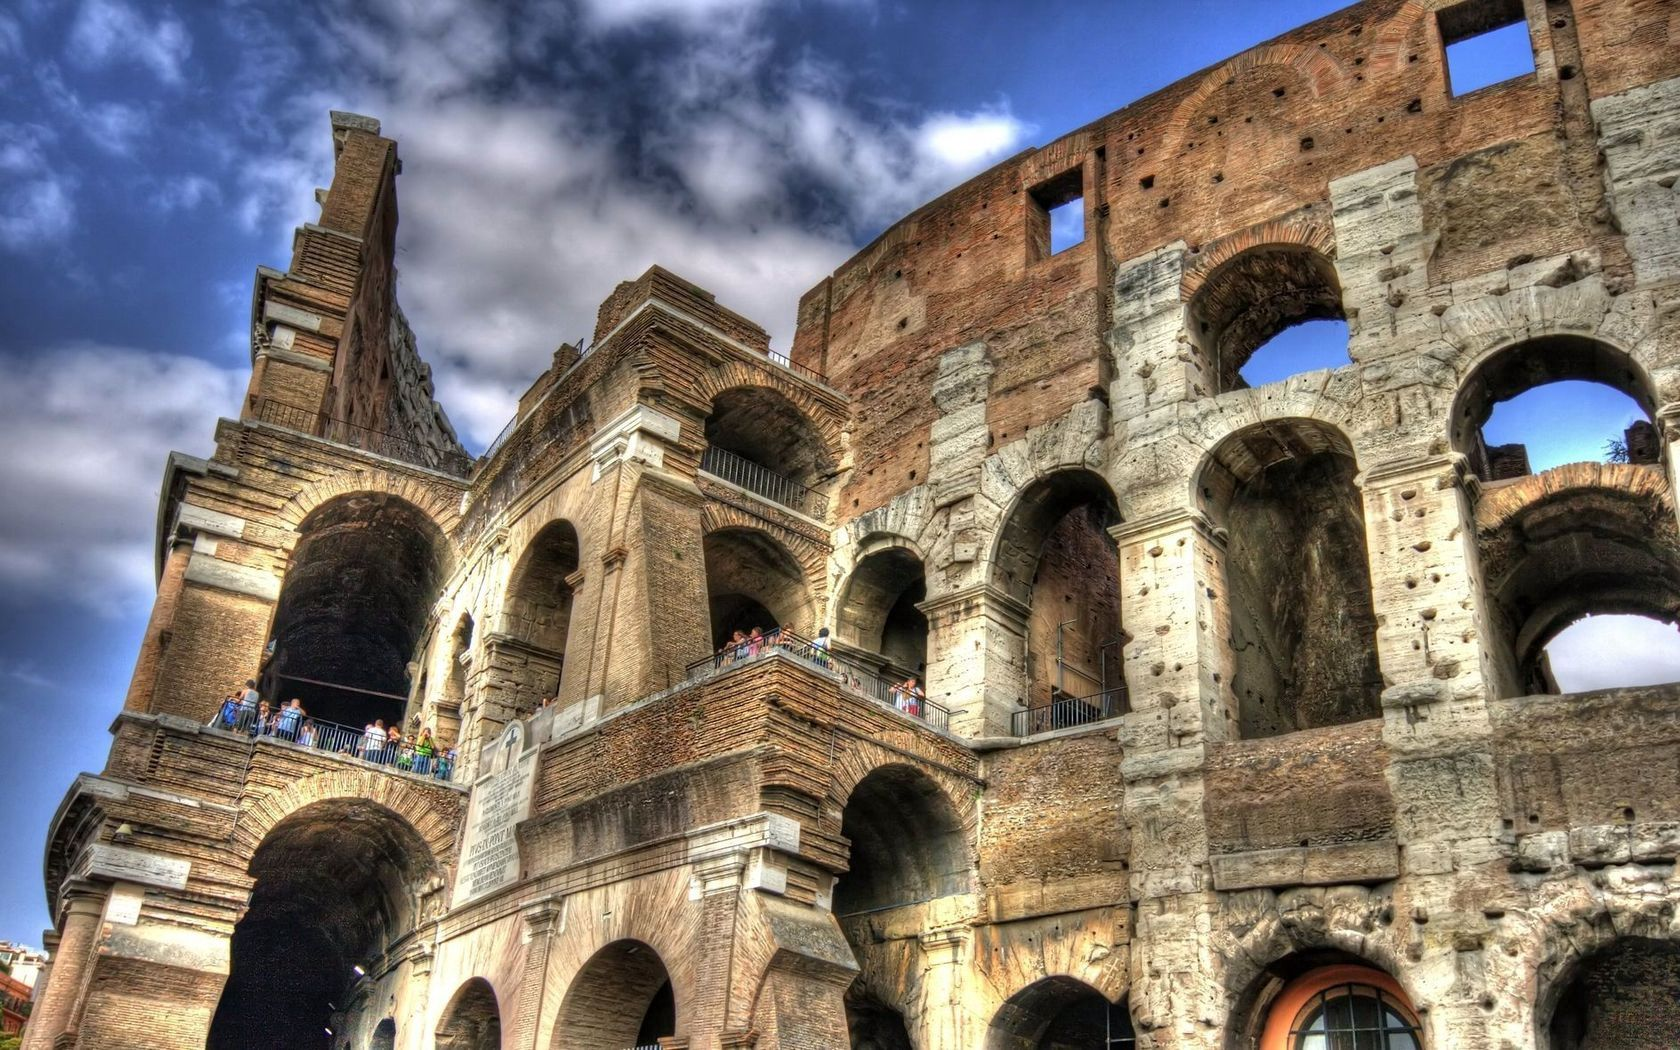 105078 download wallpaper Italy, People, Sky, Cities, Colosseum screensavers and pictures for free